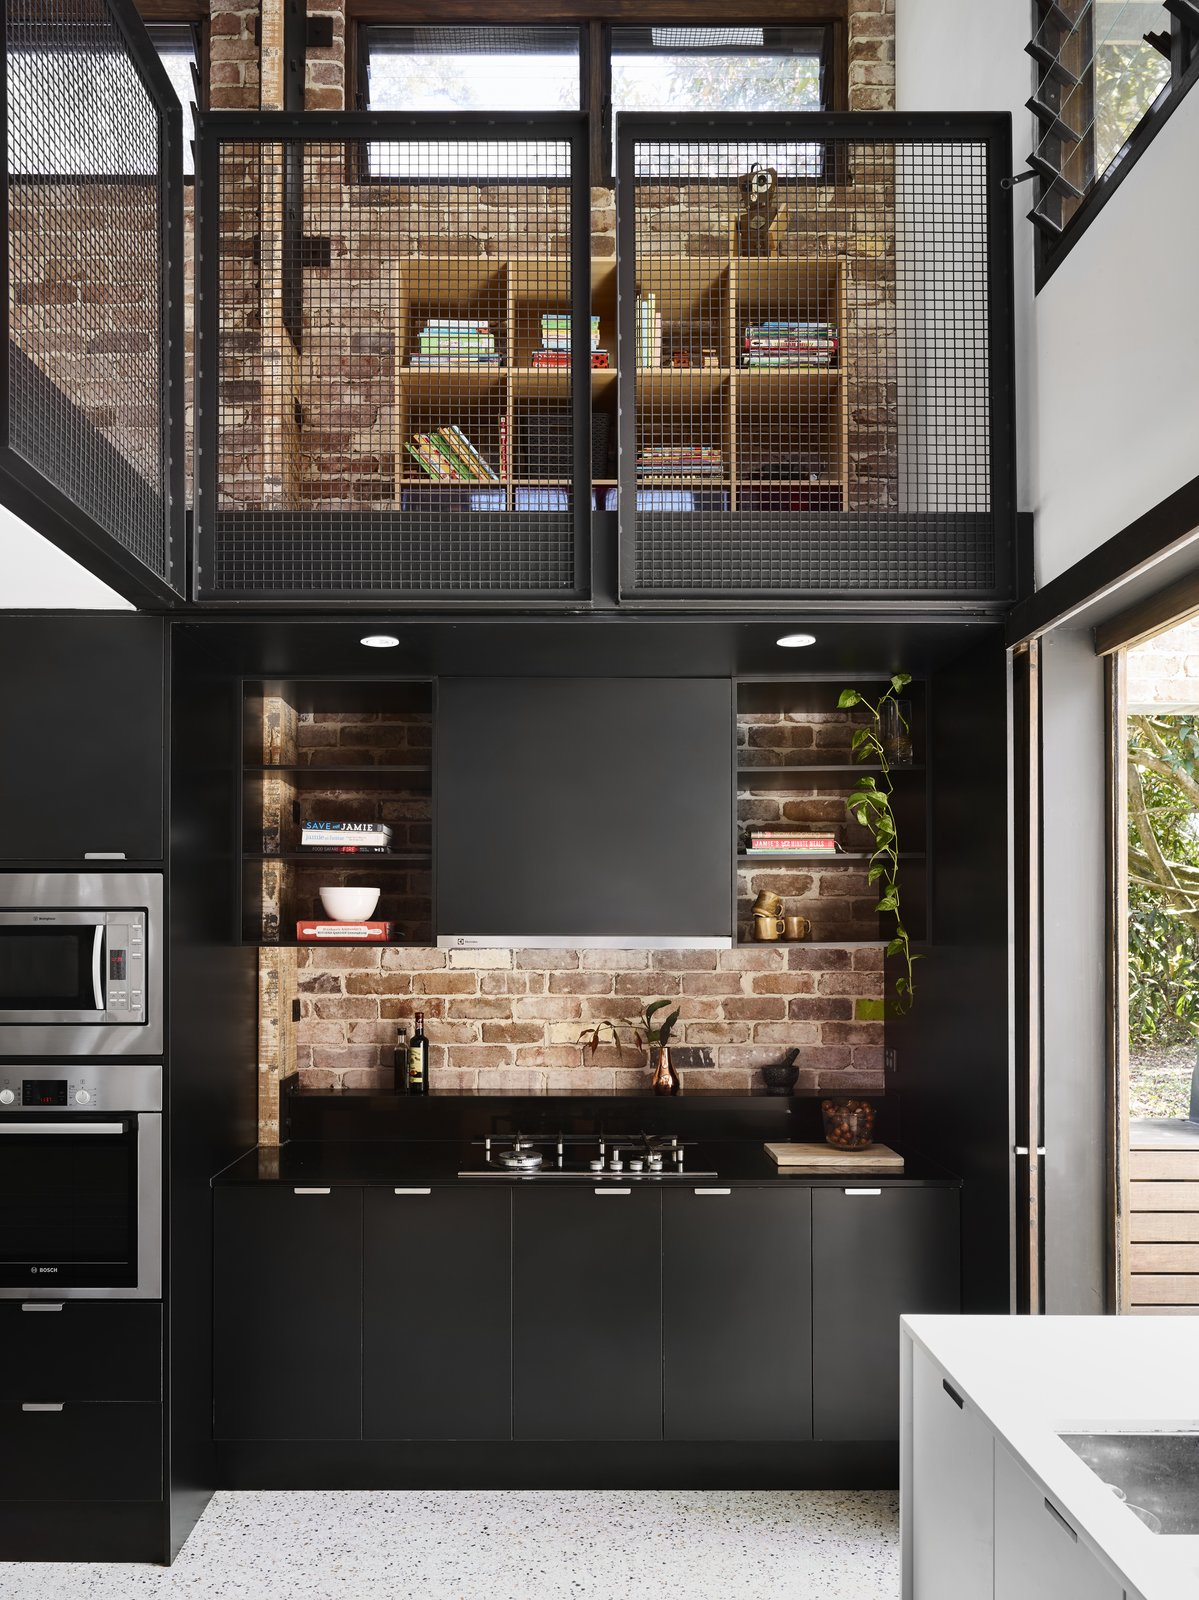 Kitchen, Engineered Quartz, Terrazzo, Granite, Recessed, Brick, Microwave, Wall Oven, Cooktops, and Range Hood With the addition of a striking, two-story  Best Kitchen Cooktops Recessed Granite Wall Oven Photos from A Brisbane Architect Designs a Light-Filled Addition For Her Brother